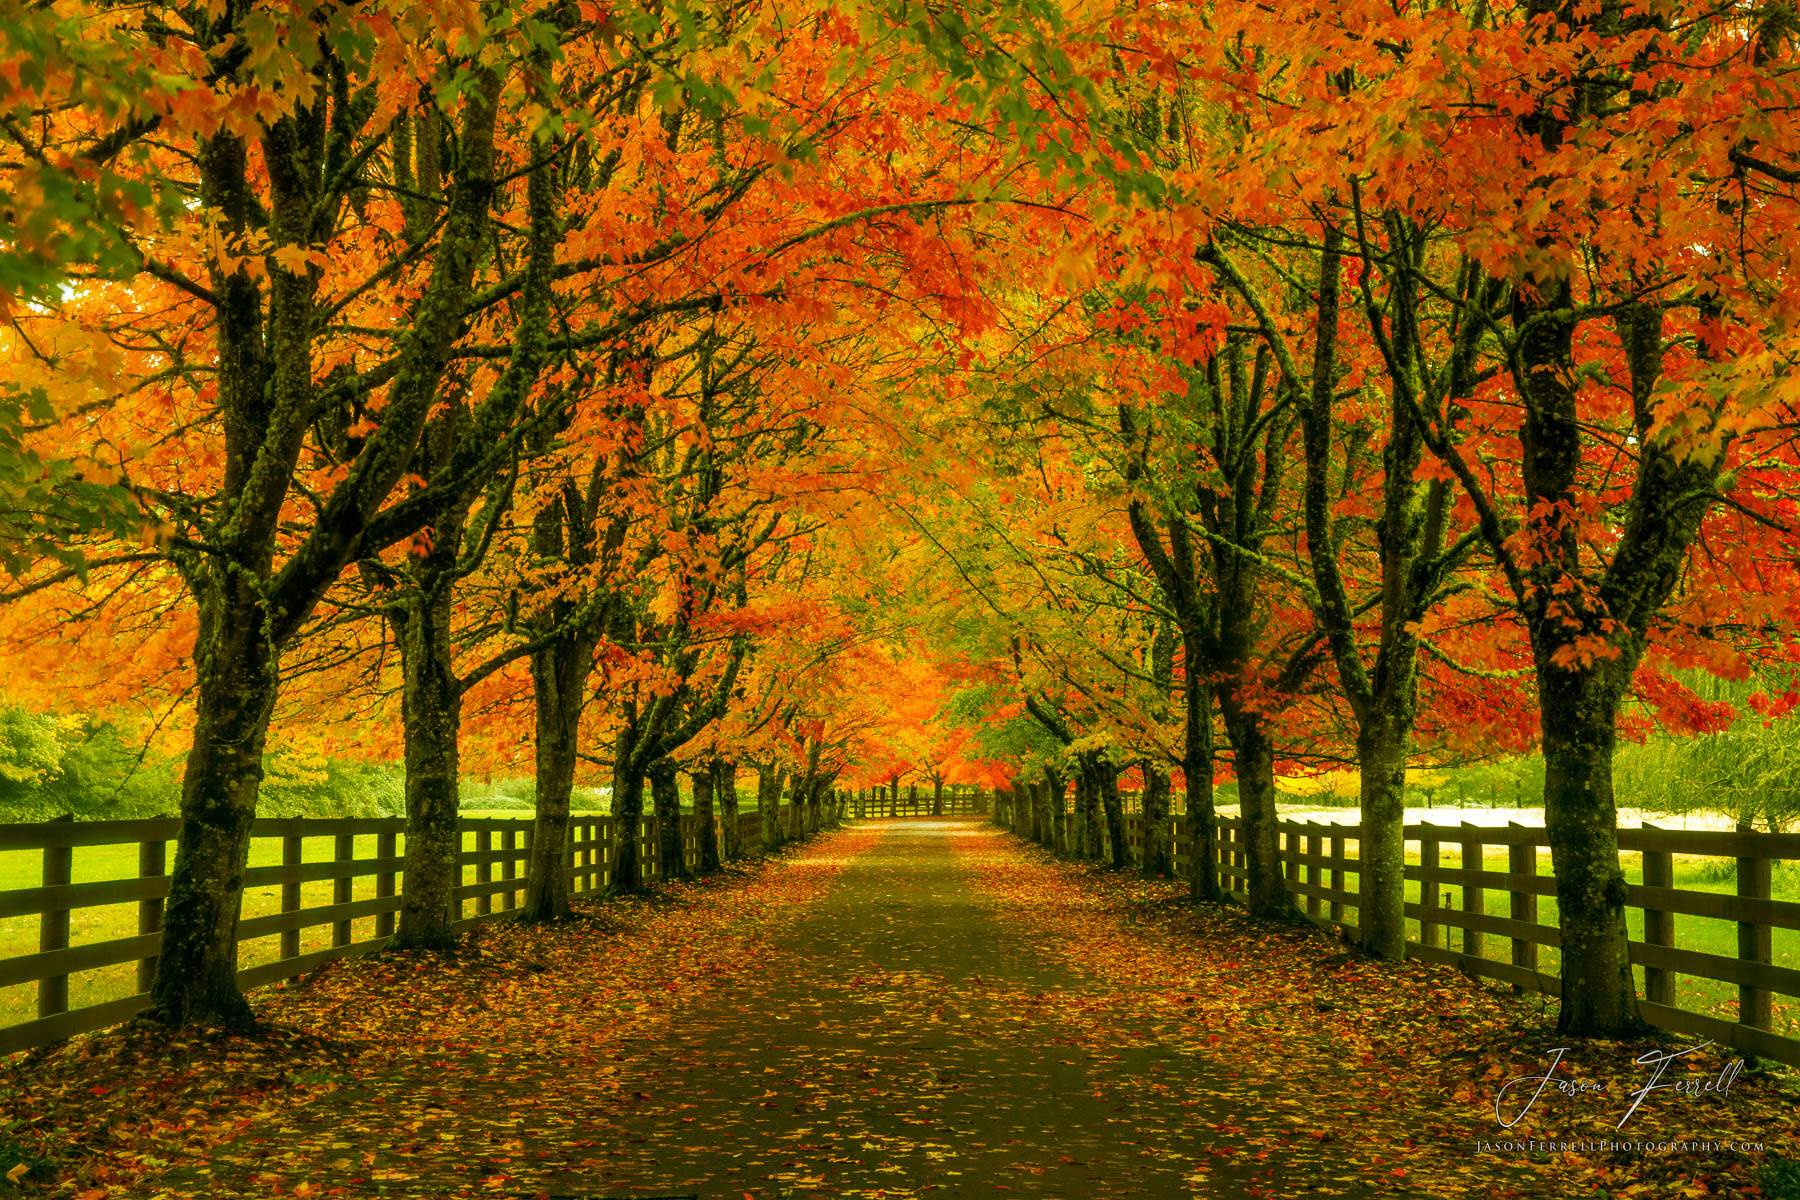 fall, autumn, lane, driveway, path, trees, maple, road, country, take me home, photo